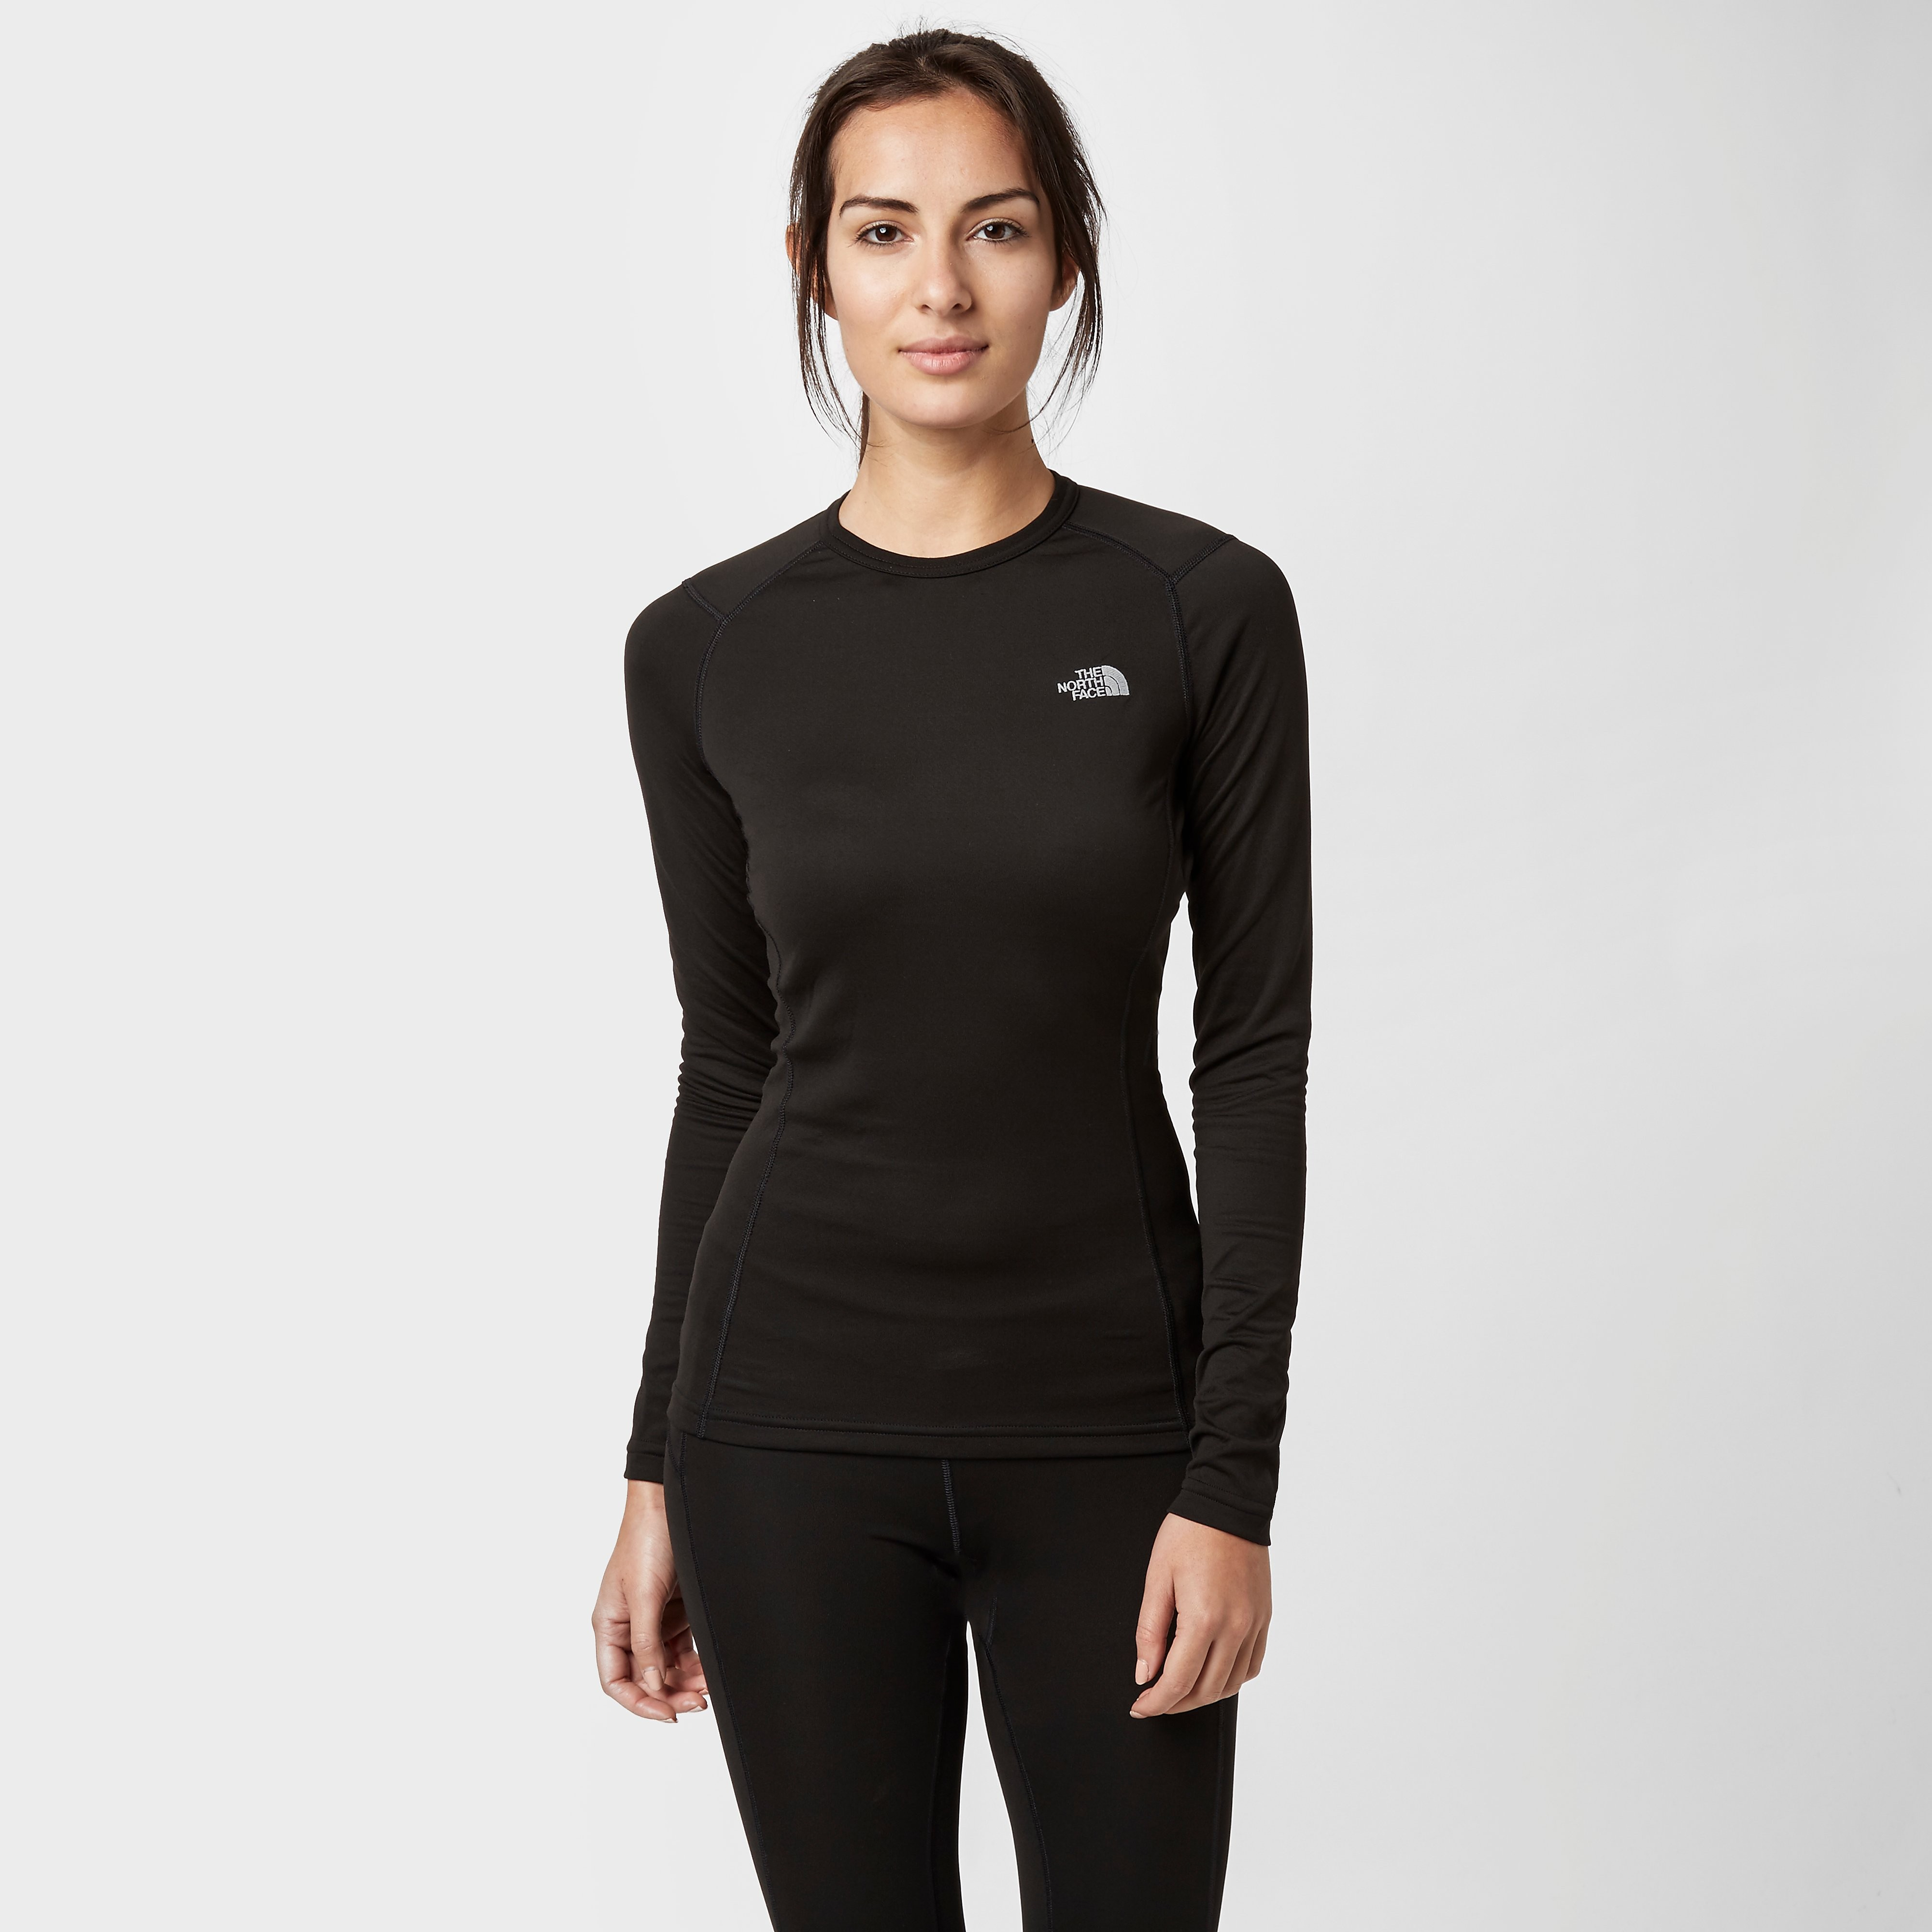 The North Face Warm Long Sleeve Crew Neck Women's Base Layer